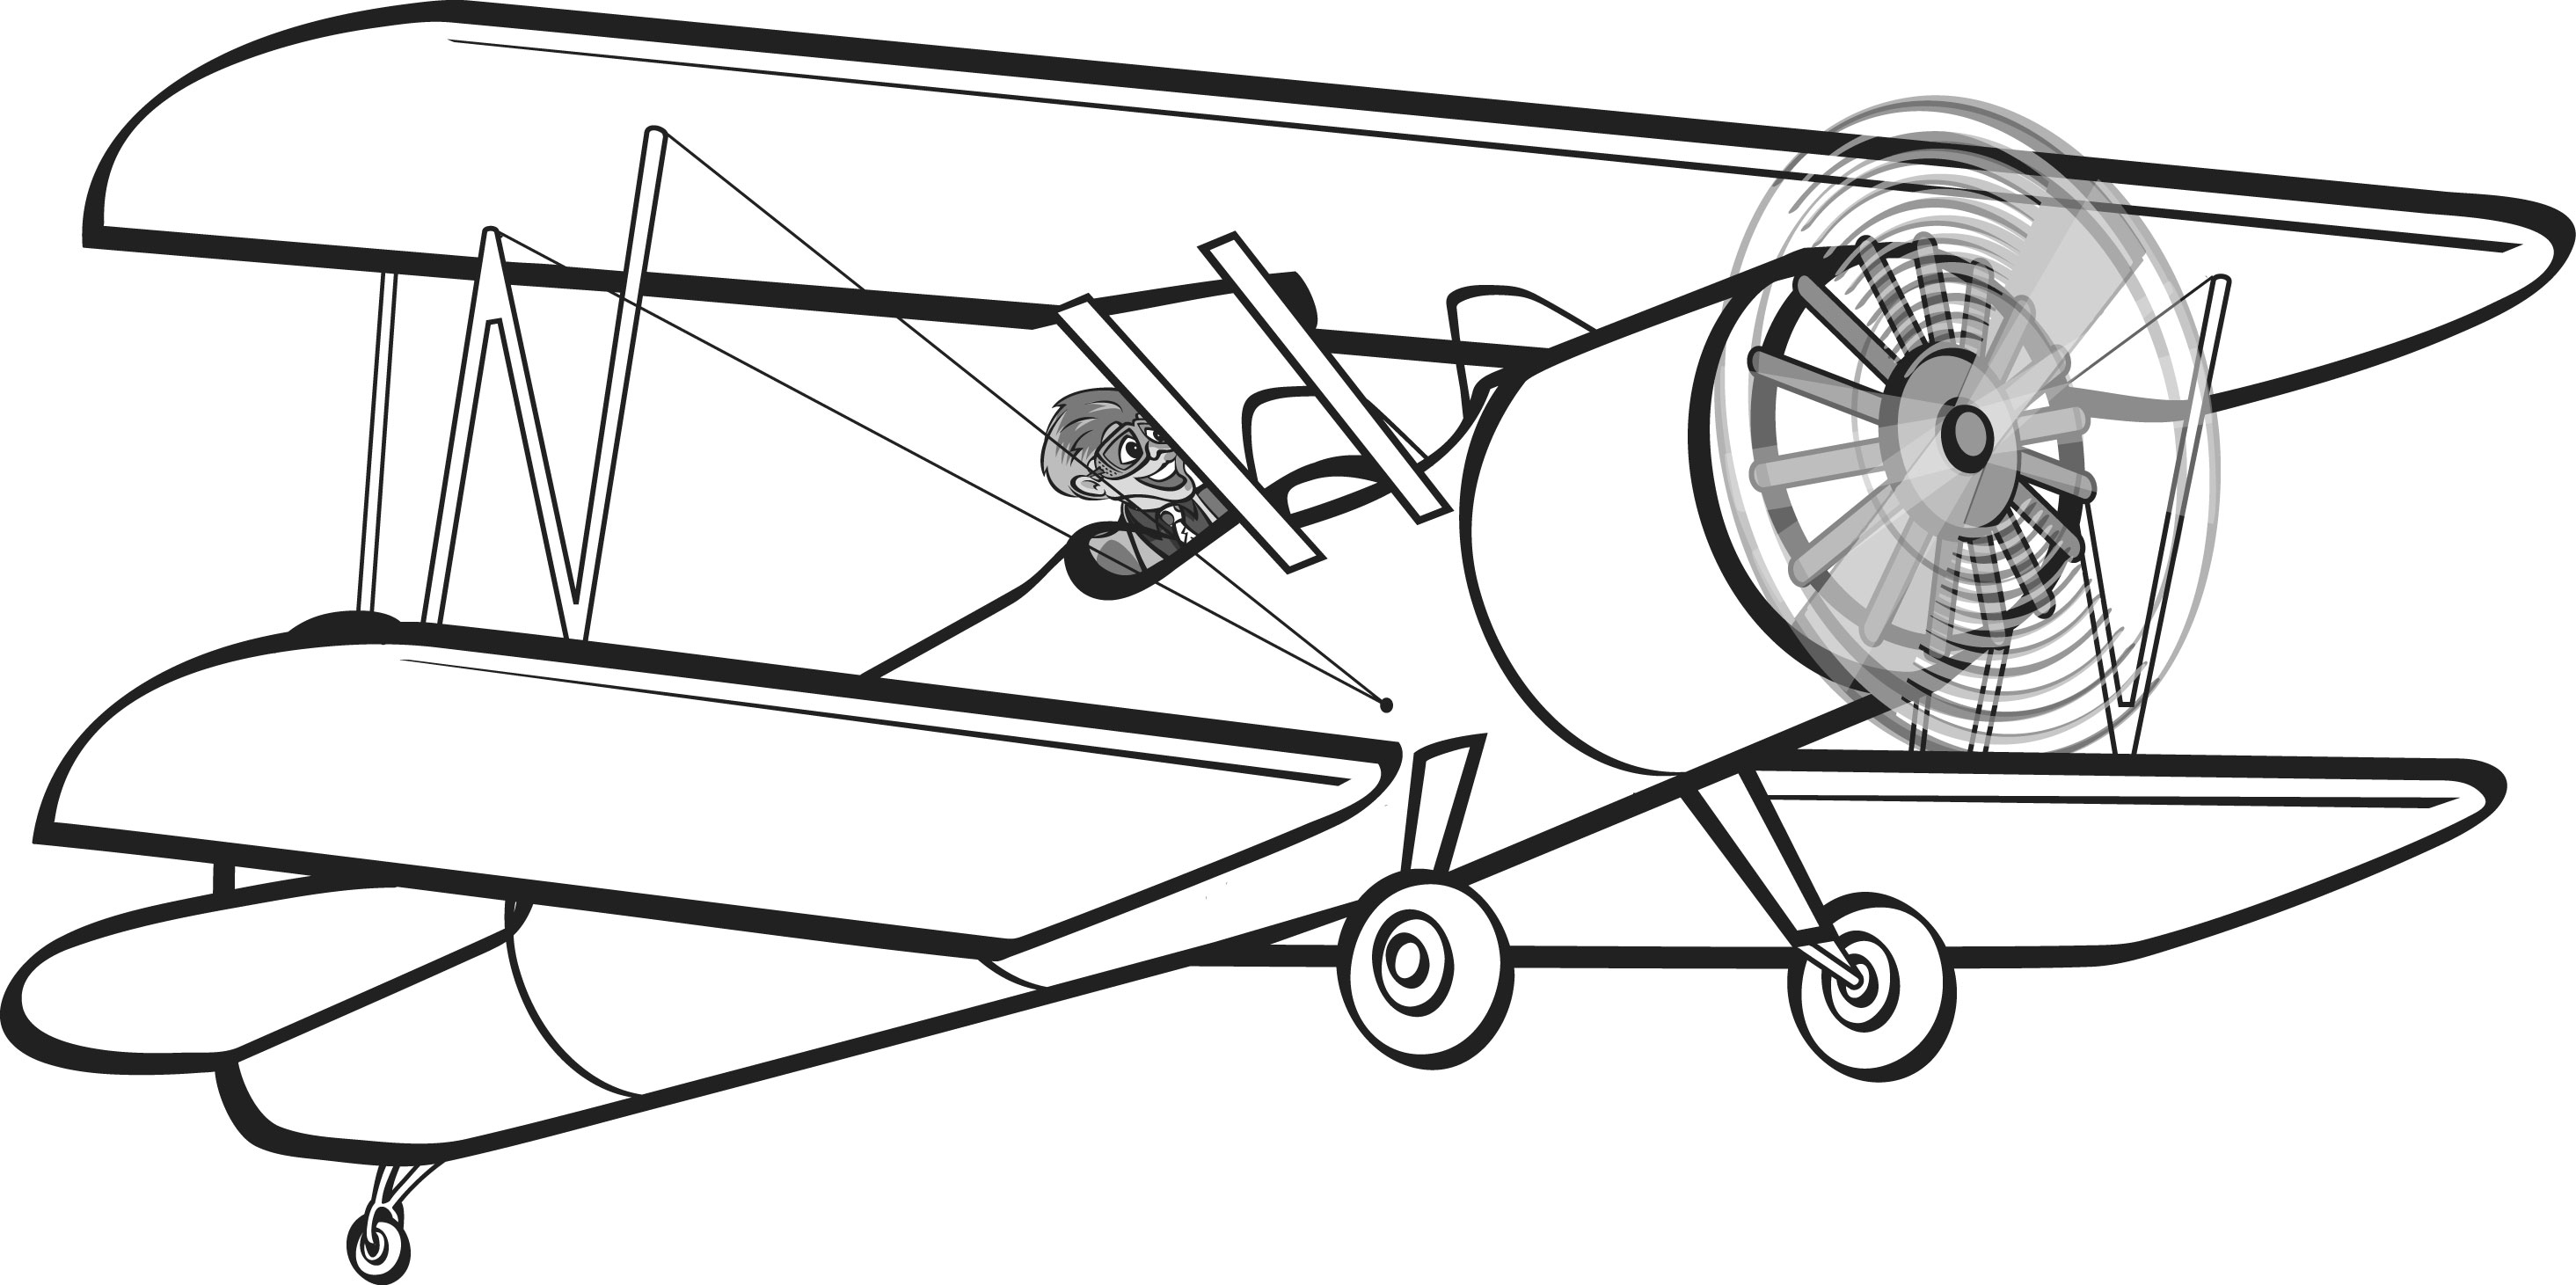 biplane clipart free clipart best airplane clipart free black and white airplane clip art free download